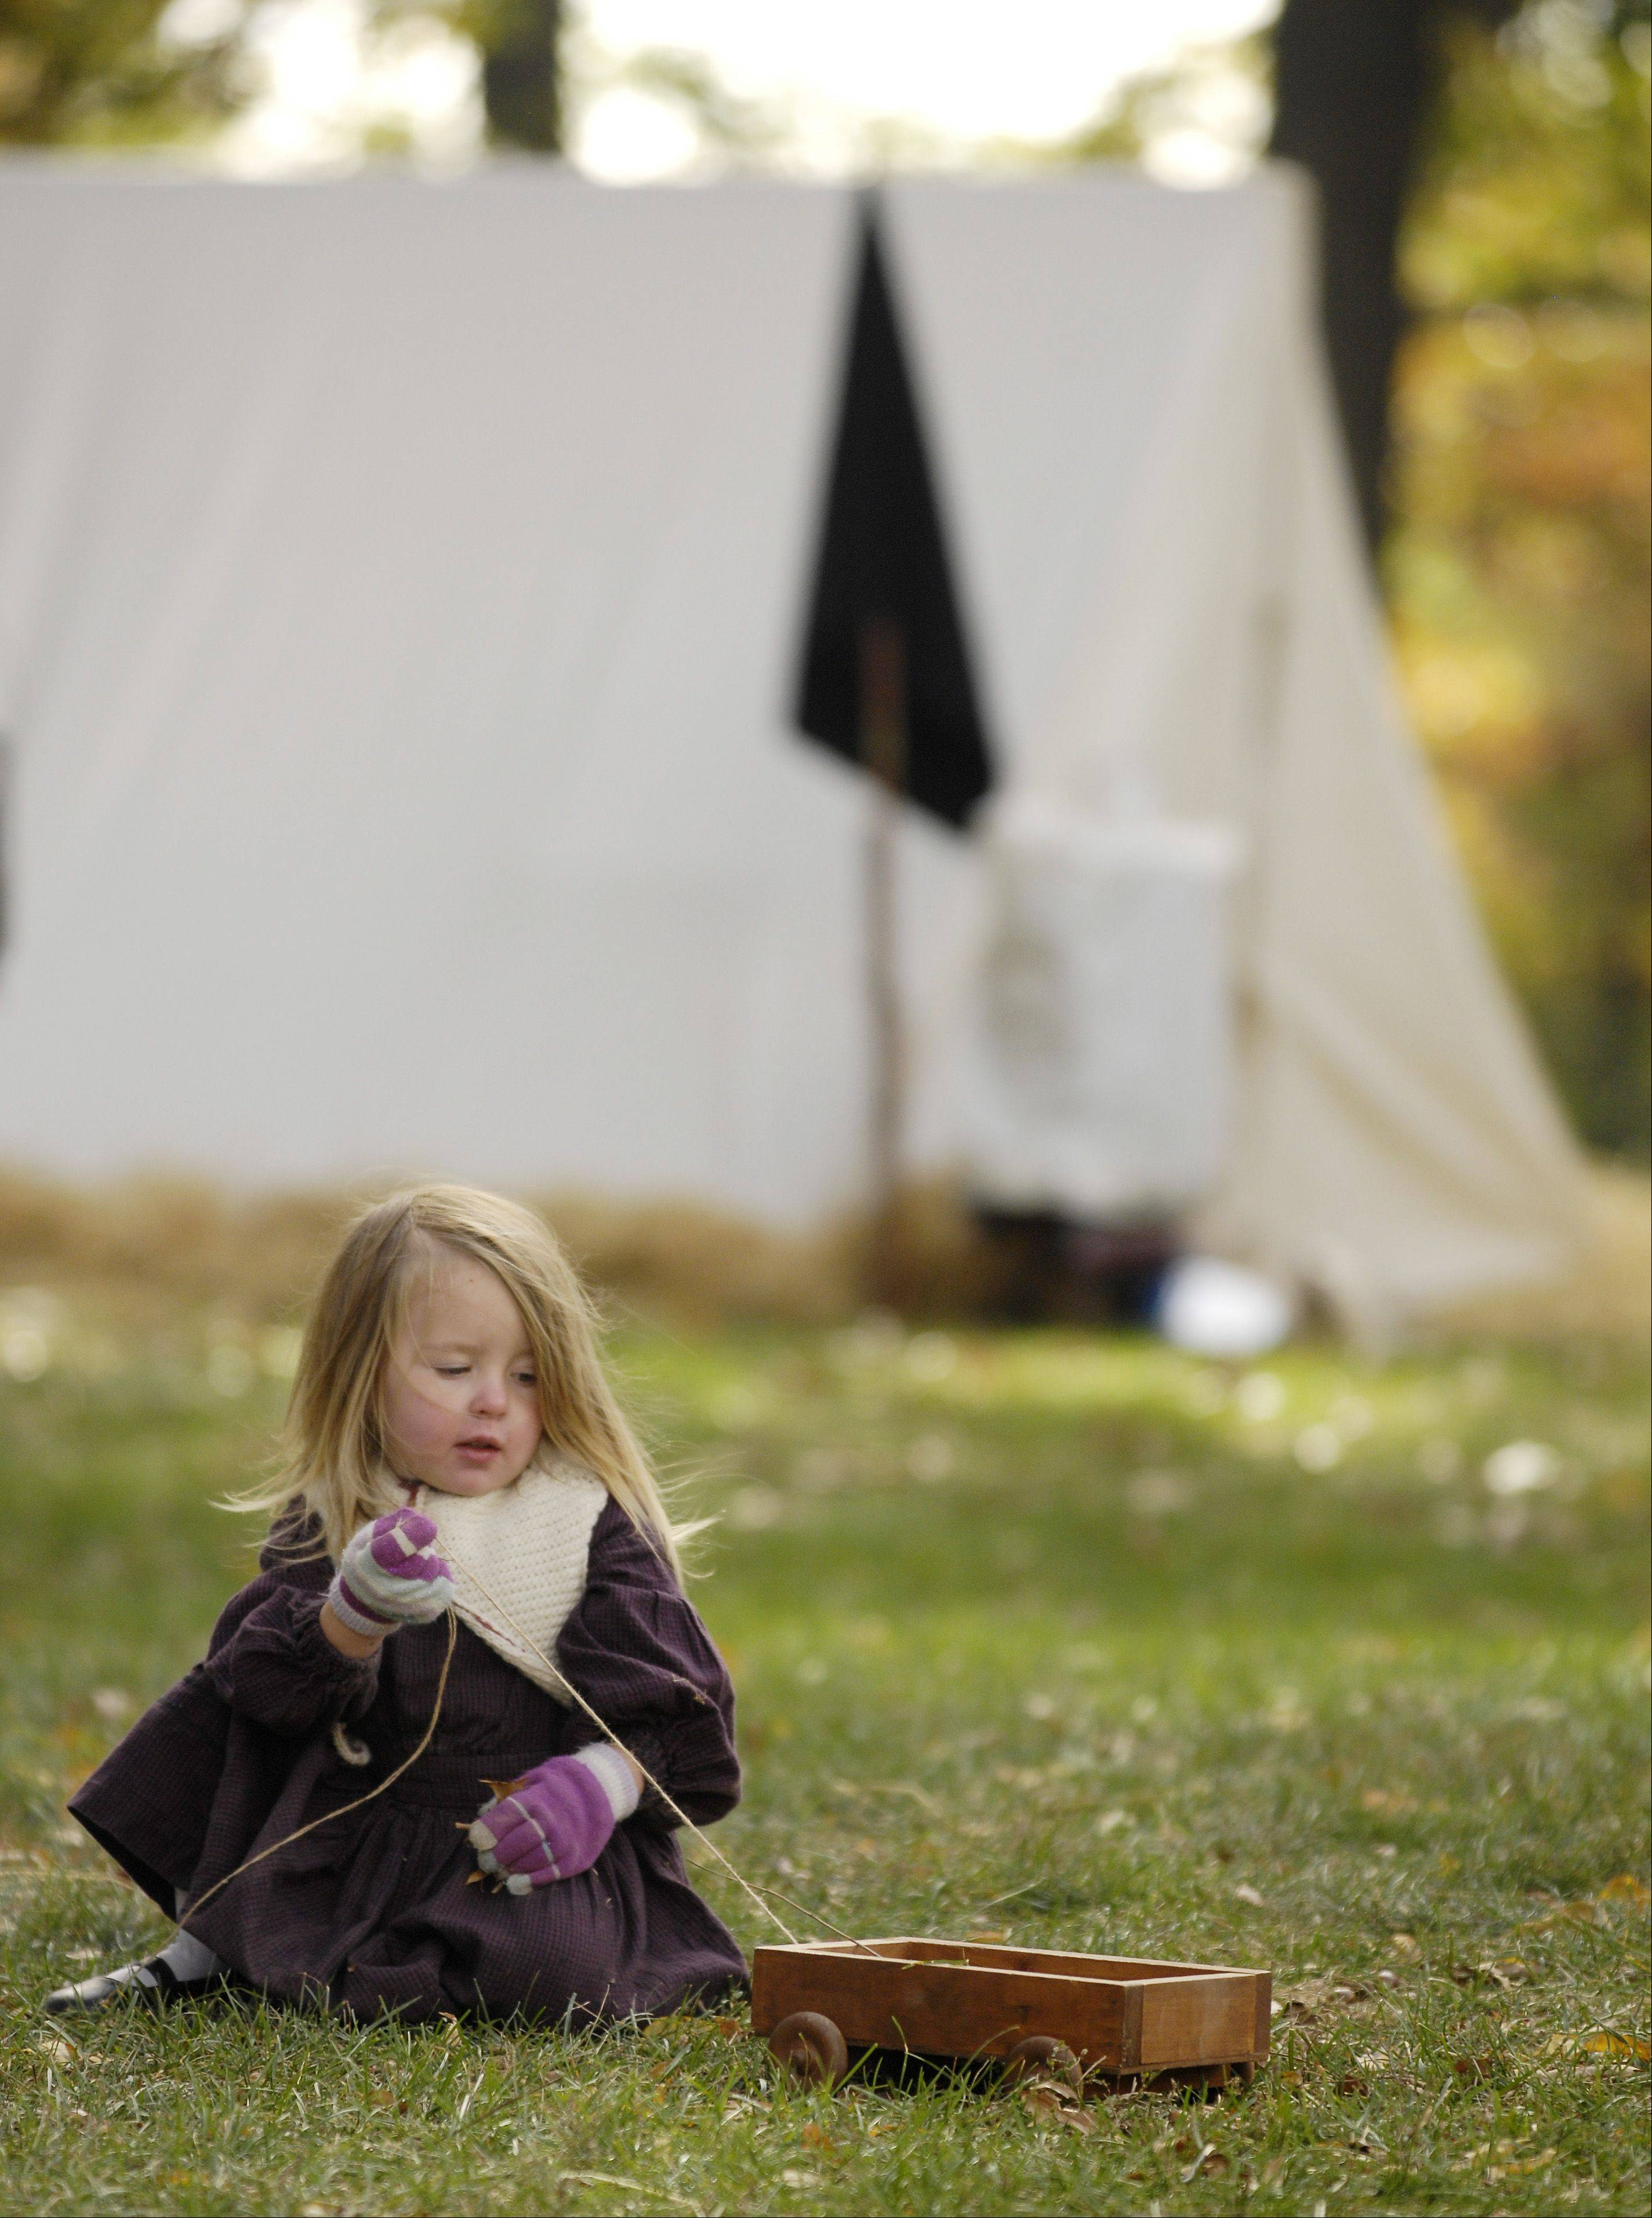 Knox Burau, 2, of DeKalb, portrays a family member of the Missouri Gorillas in a Confederate Civil War Symposium and re-enactment Sunday at Cantigny Park in Wheaton.